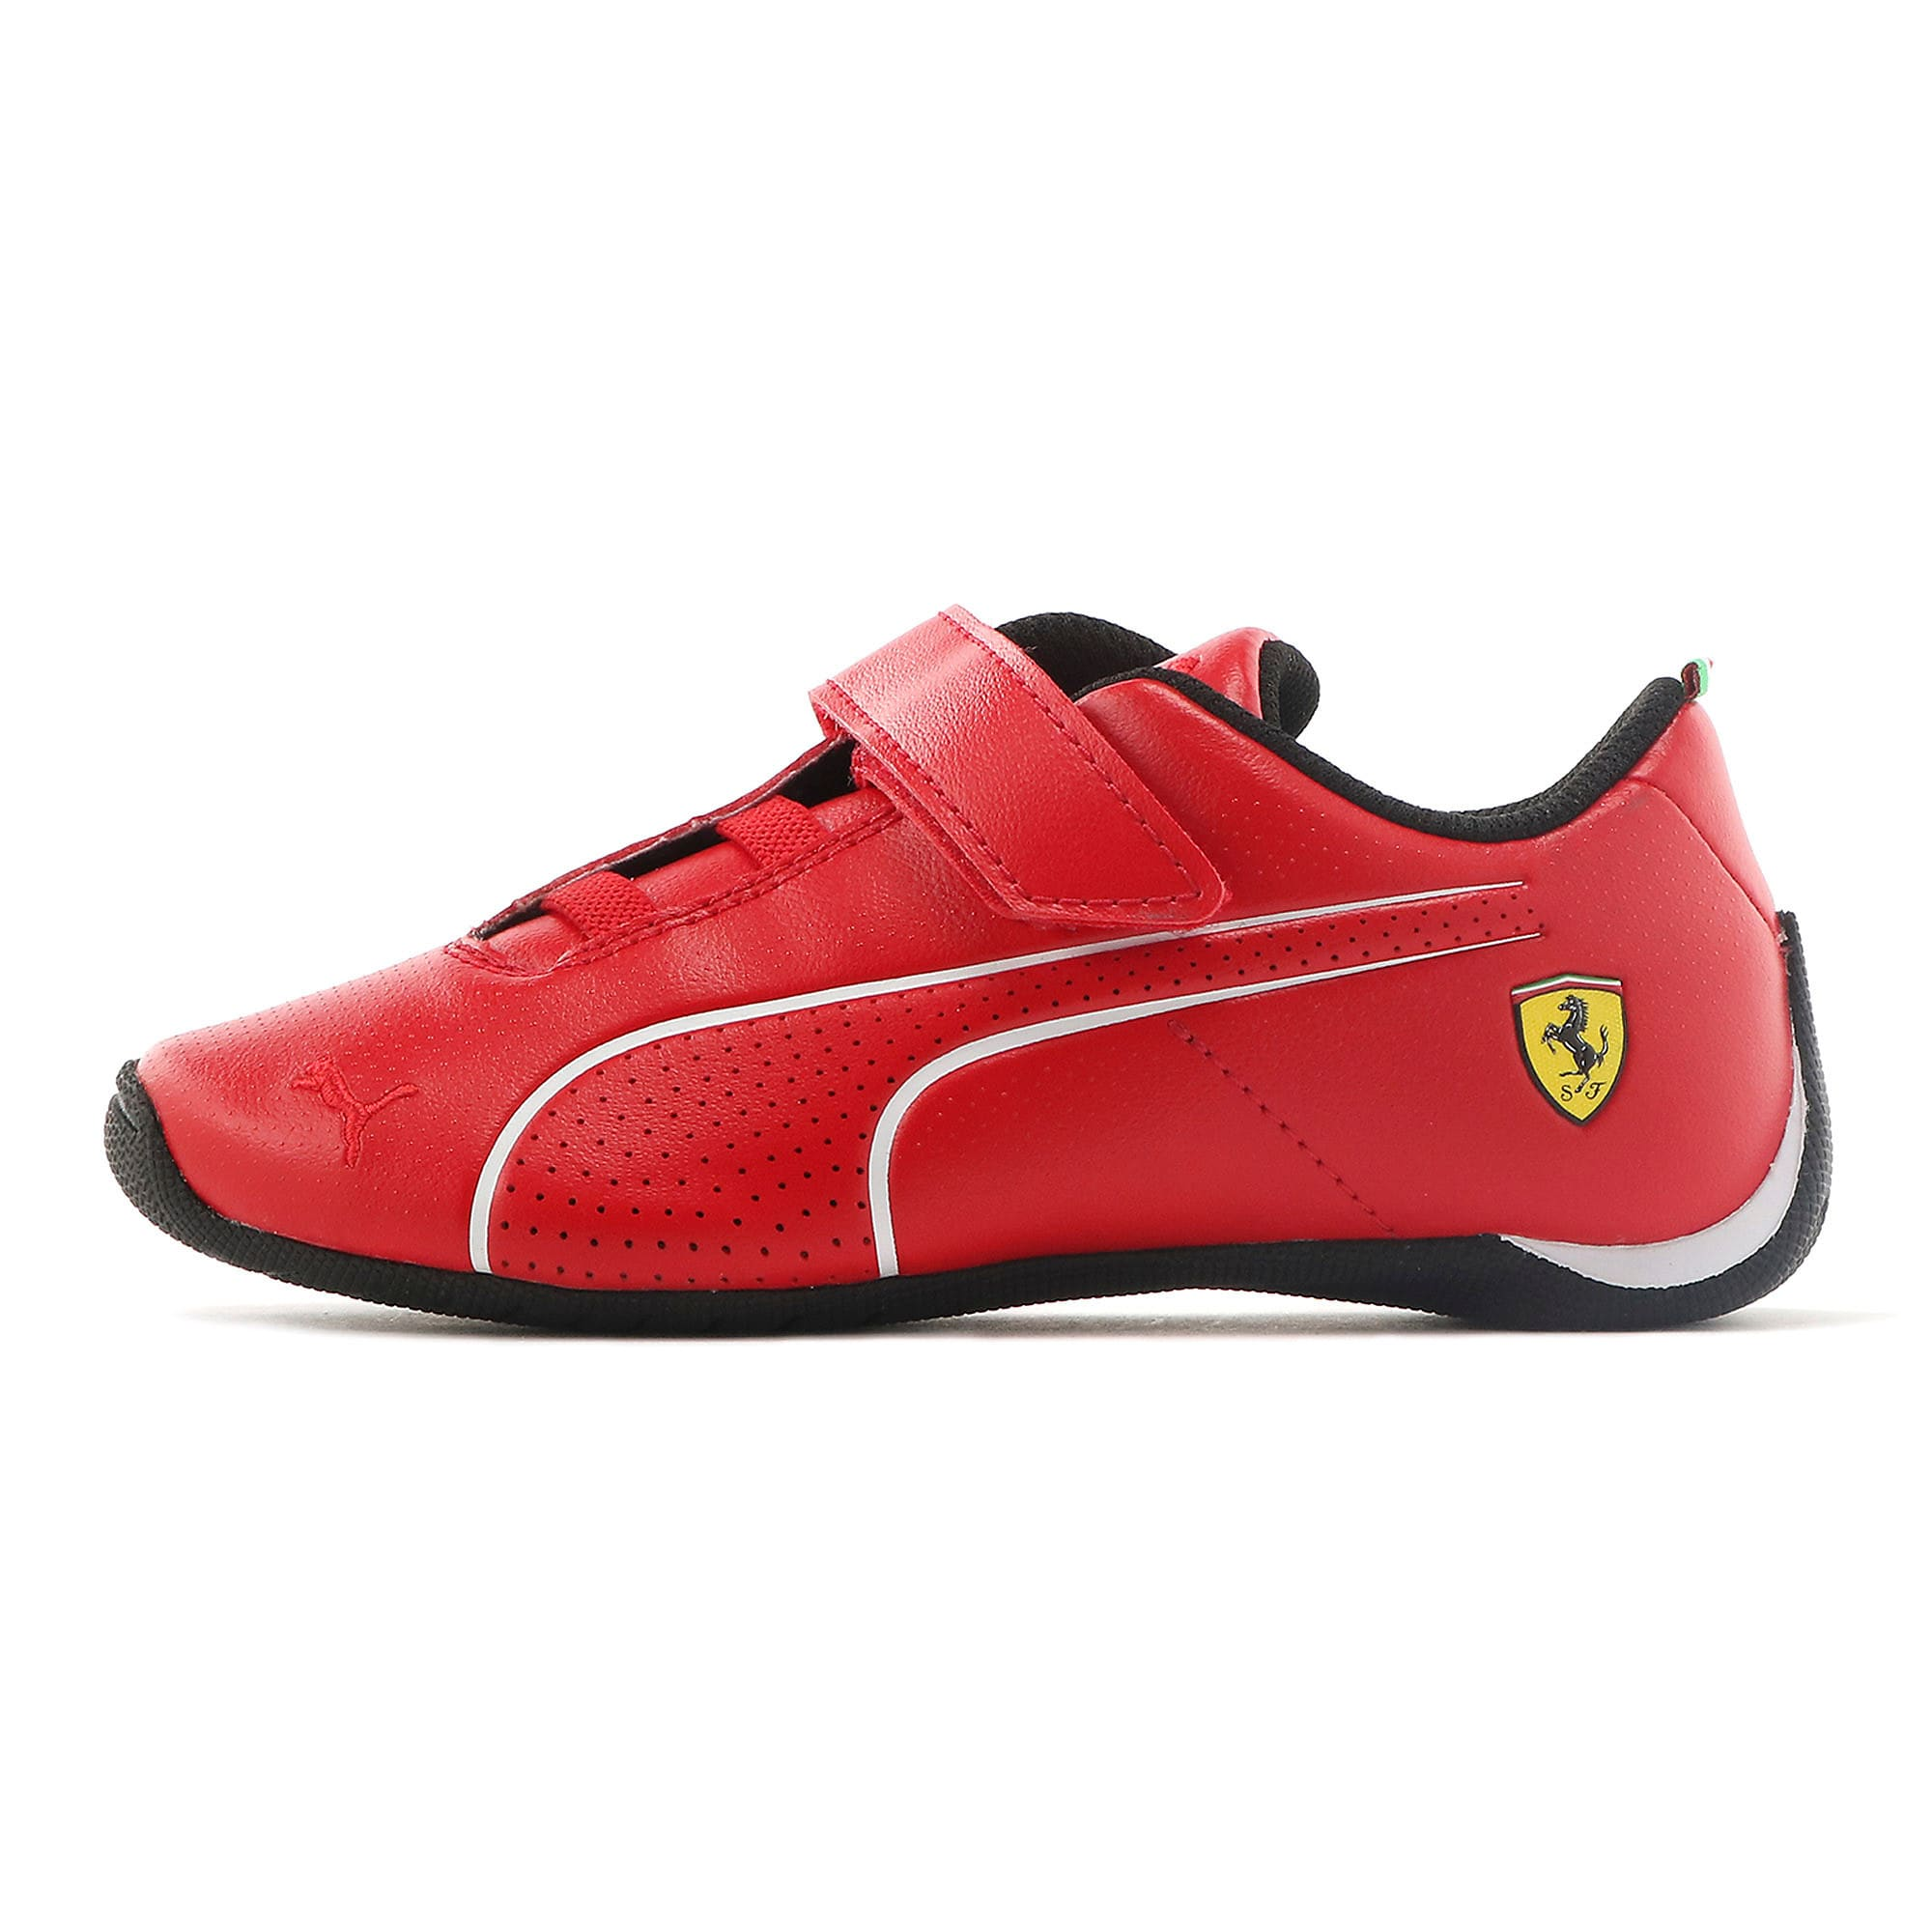 Thumbnail 1 of Scuderia Ferrari Future Cat Ultra Little Kids' Shoes, Rosso Corsa-Puma White, medium